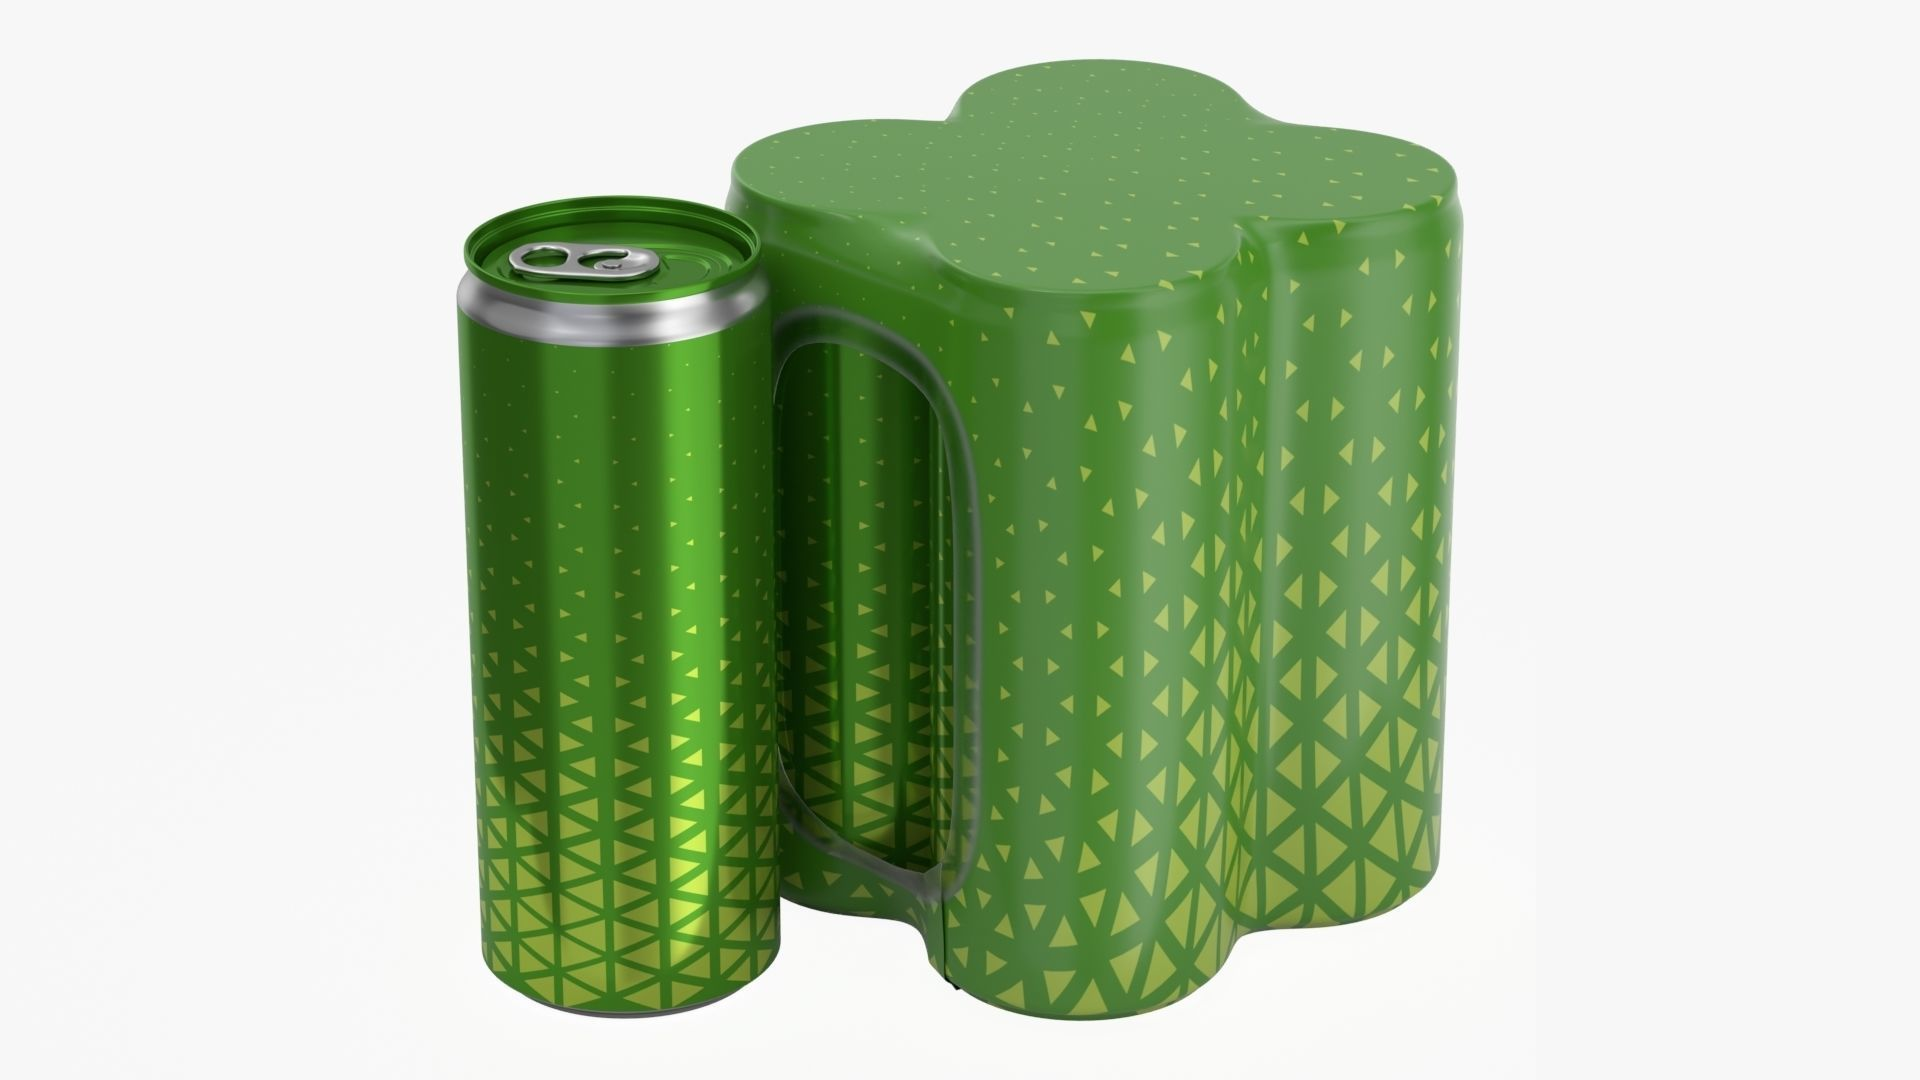 Packaging for four 250ml slim beverage soda cans